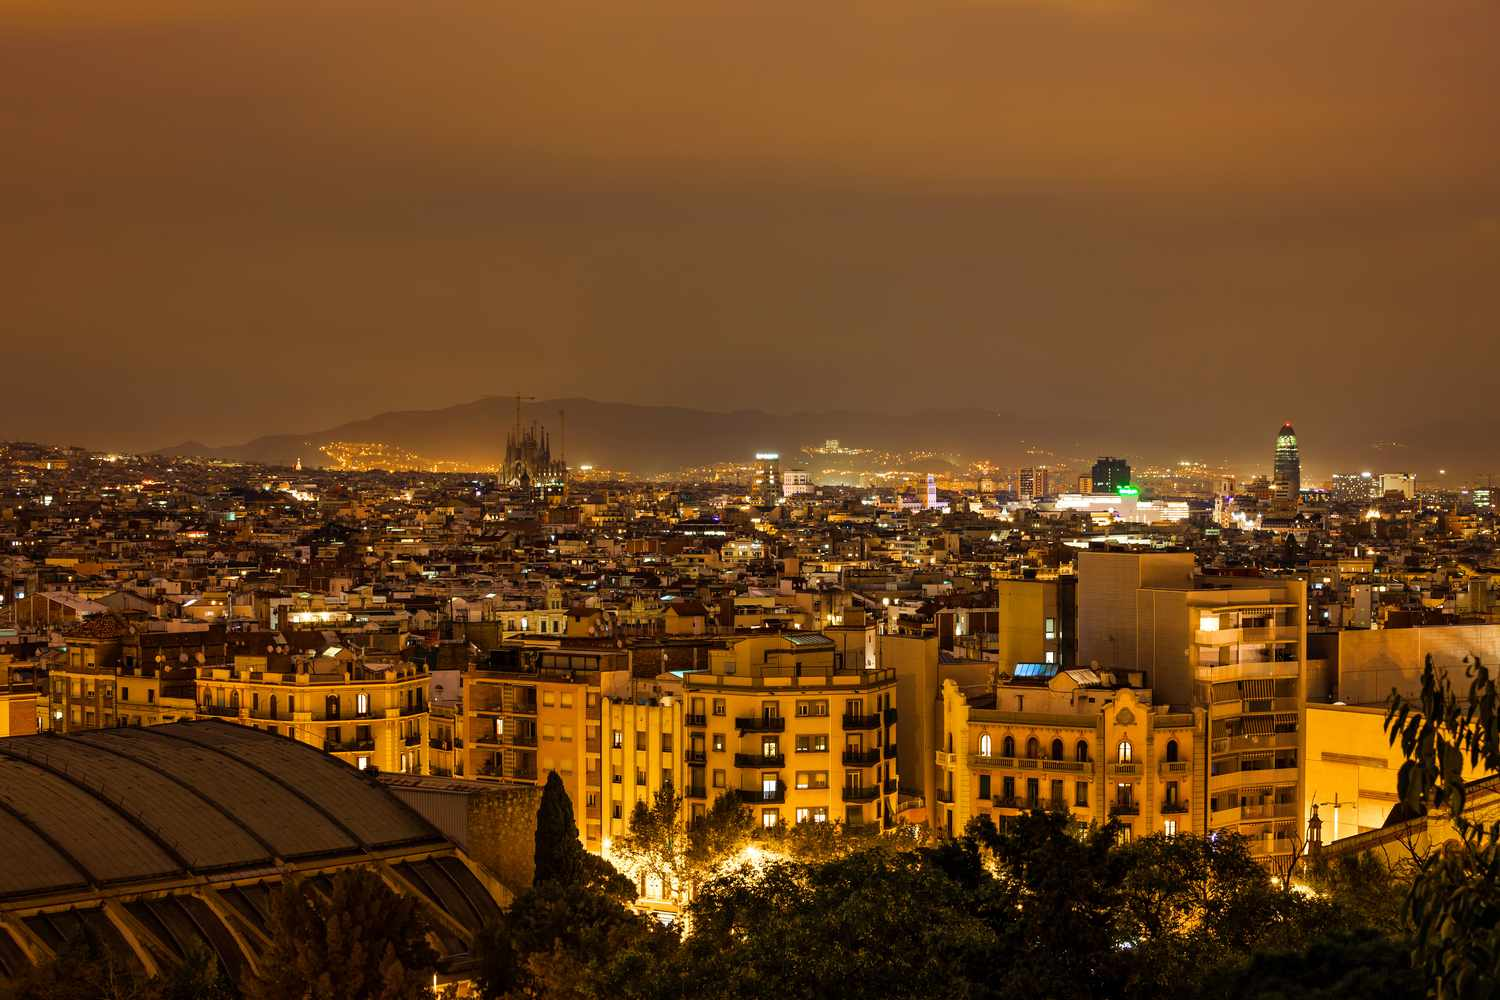 Night view of the Poble Sec neighborhood in Barcelona